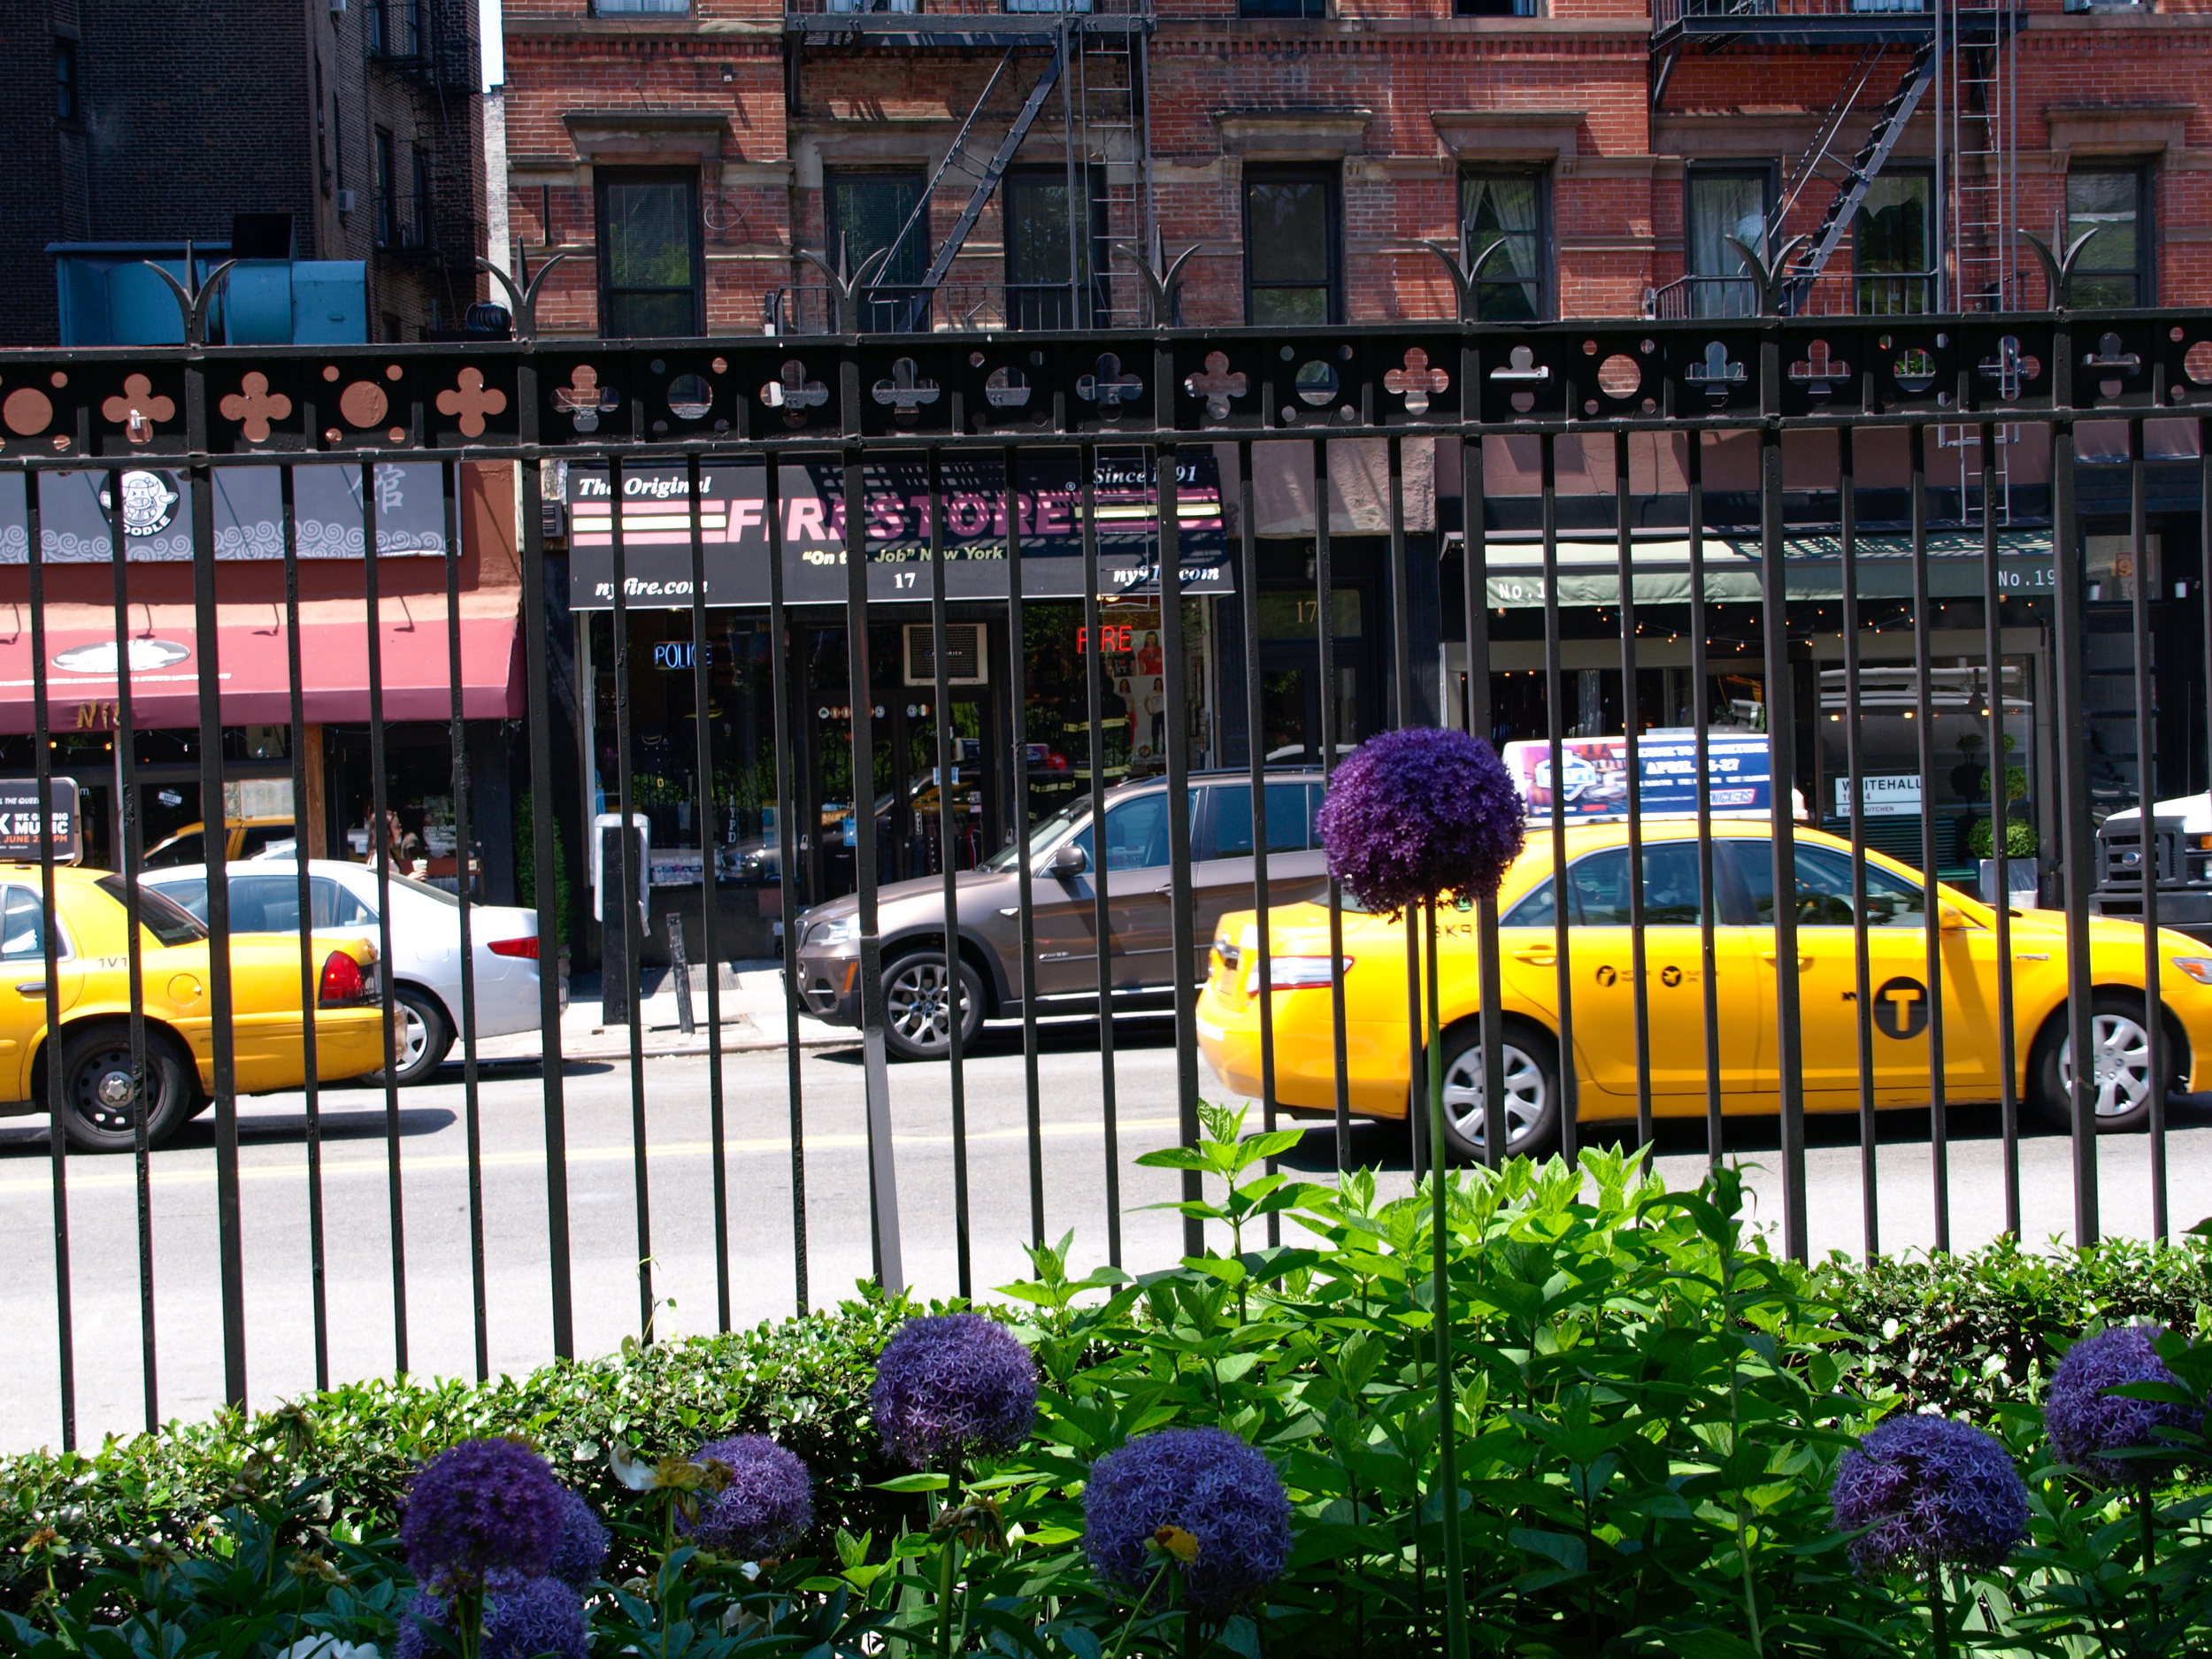 flower-in-front-of-taxi.jpg